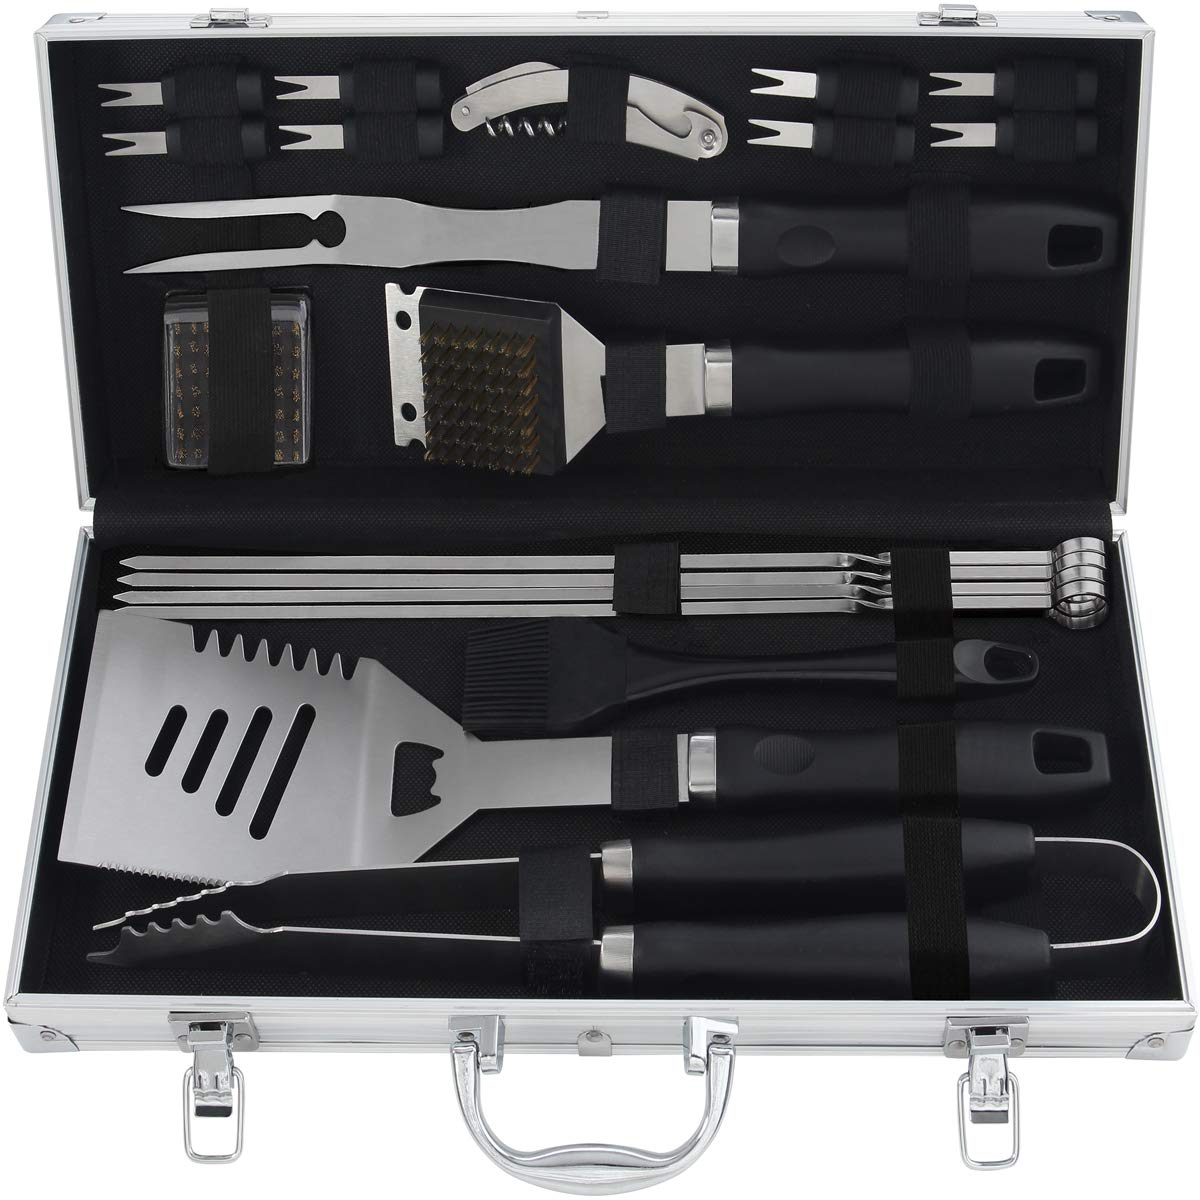 Grilljoy 20PCS Heavy Duty BBQ Grill Tools Set. Extra Thick Stainless Steel Fork, Spatula, Tongs Cleaning Brush. Complete Barbecue Grilling Accessories Kit in Aluminum Storage Case. Dishwasher Safe